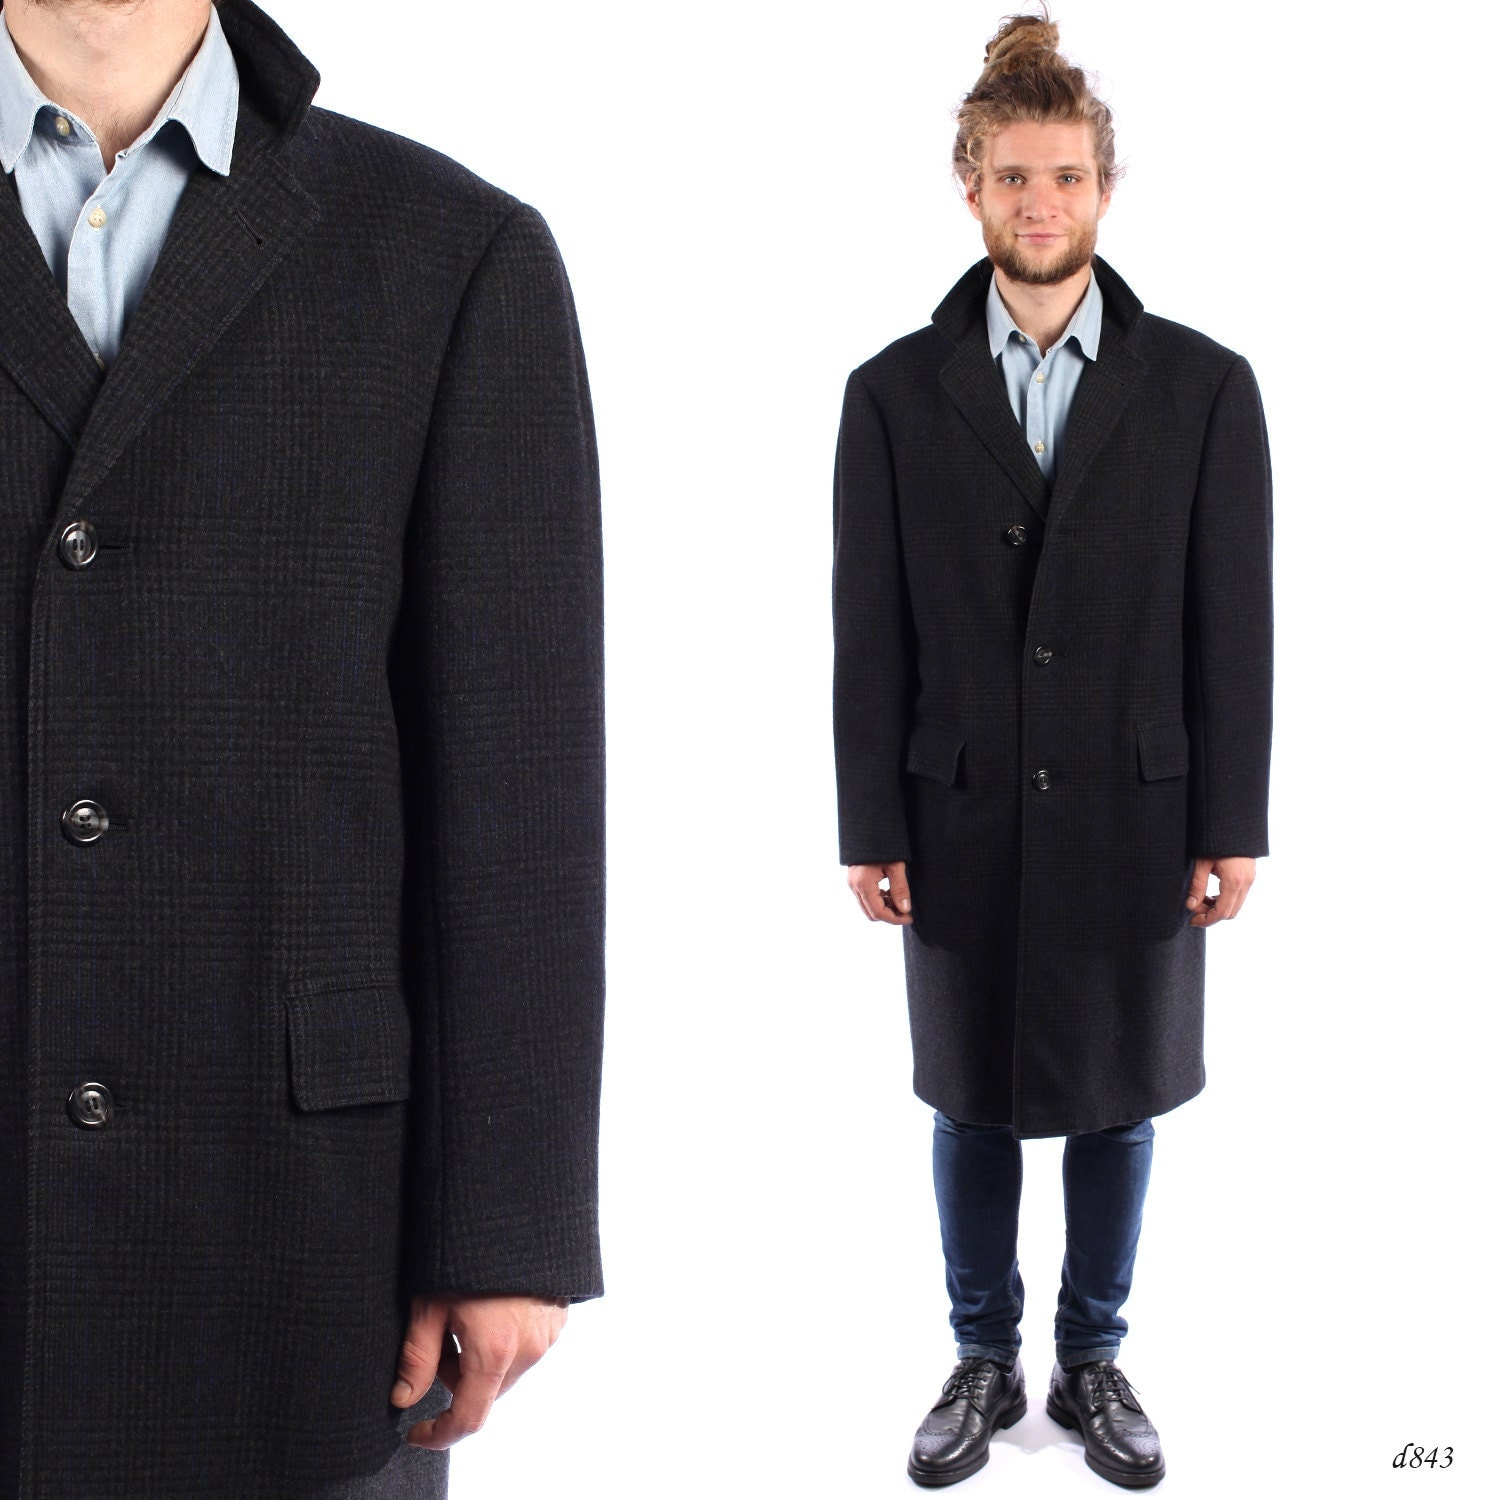 Mens WOOL Coat . Vintage 1960s Black Wool Winter Topcoat Retro